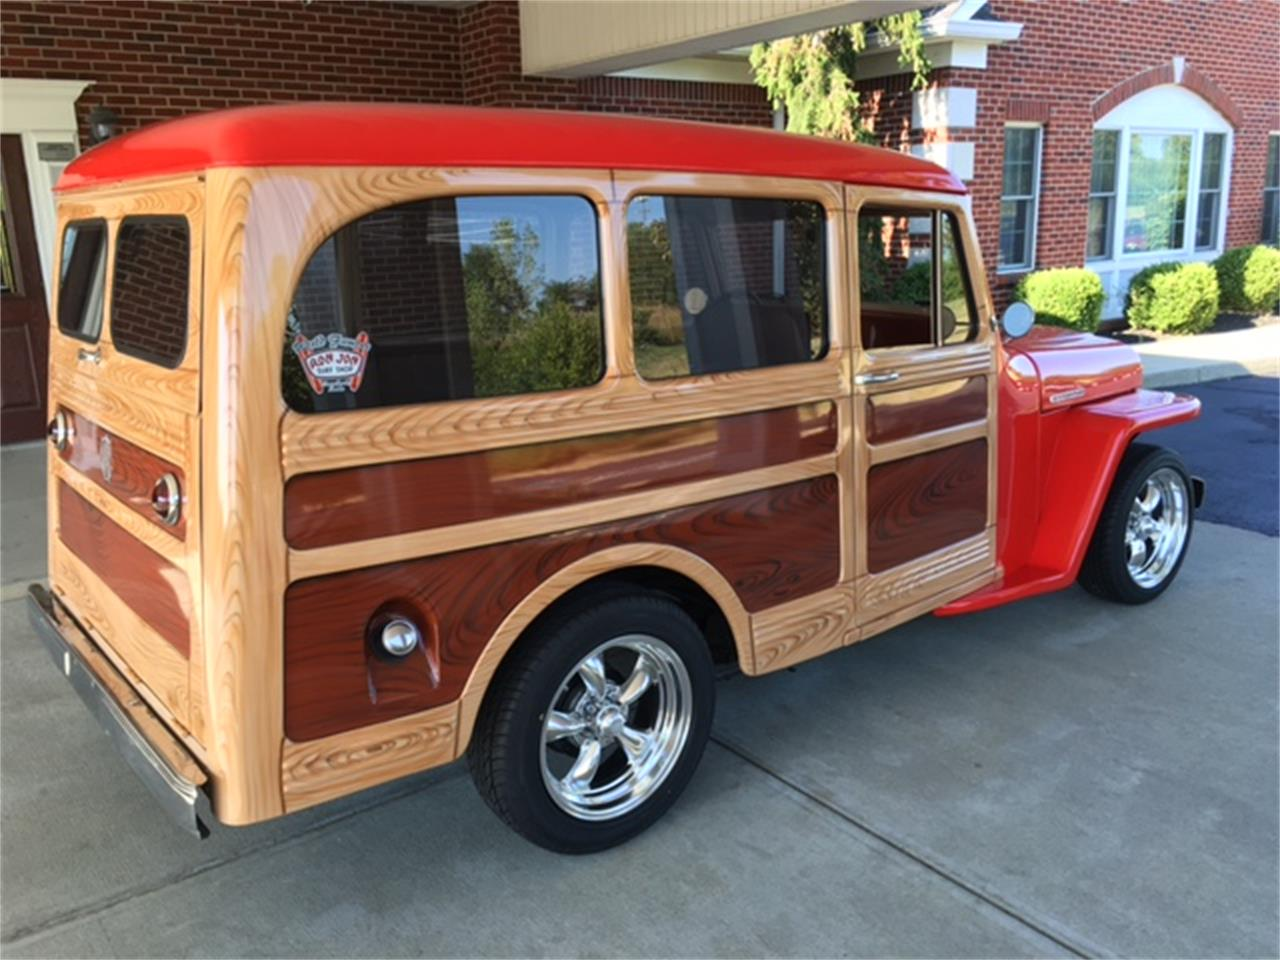 1947 Willys Overland Jeep Station Wagon For Sale Classiccars Com Cc 892295